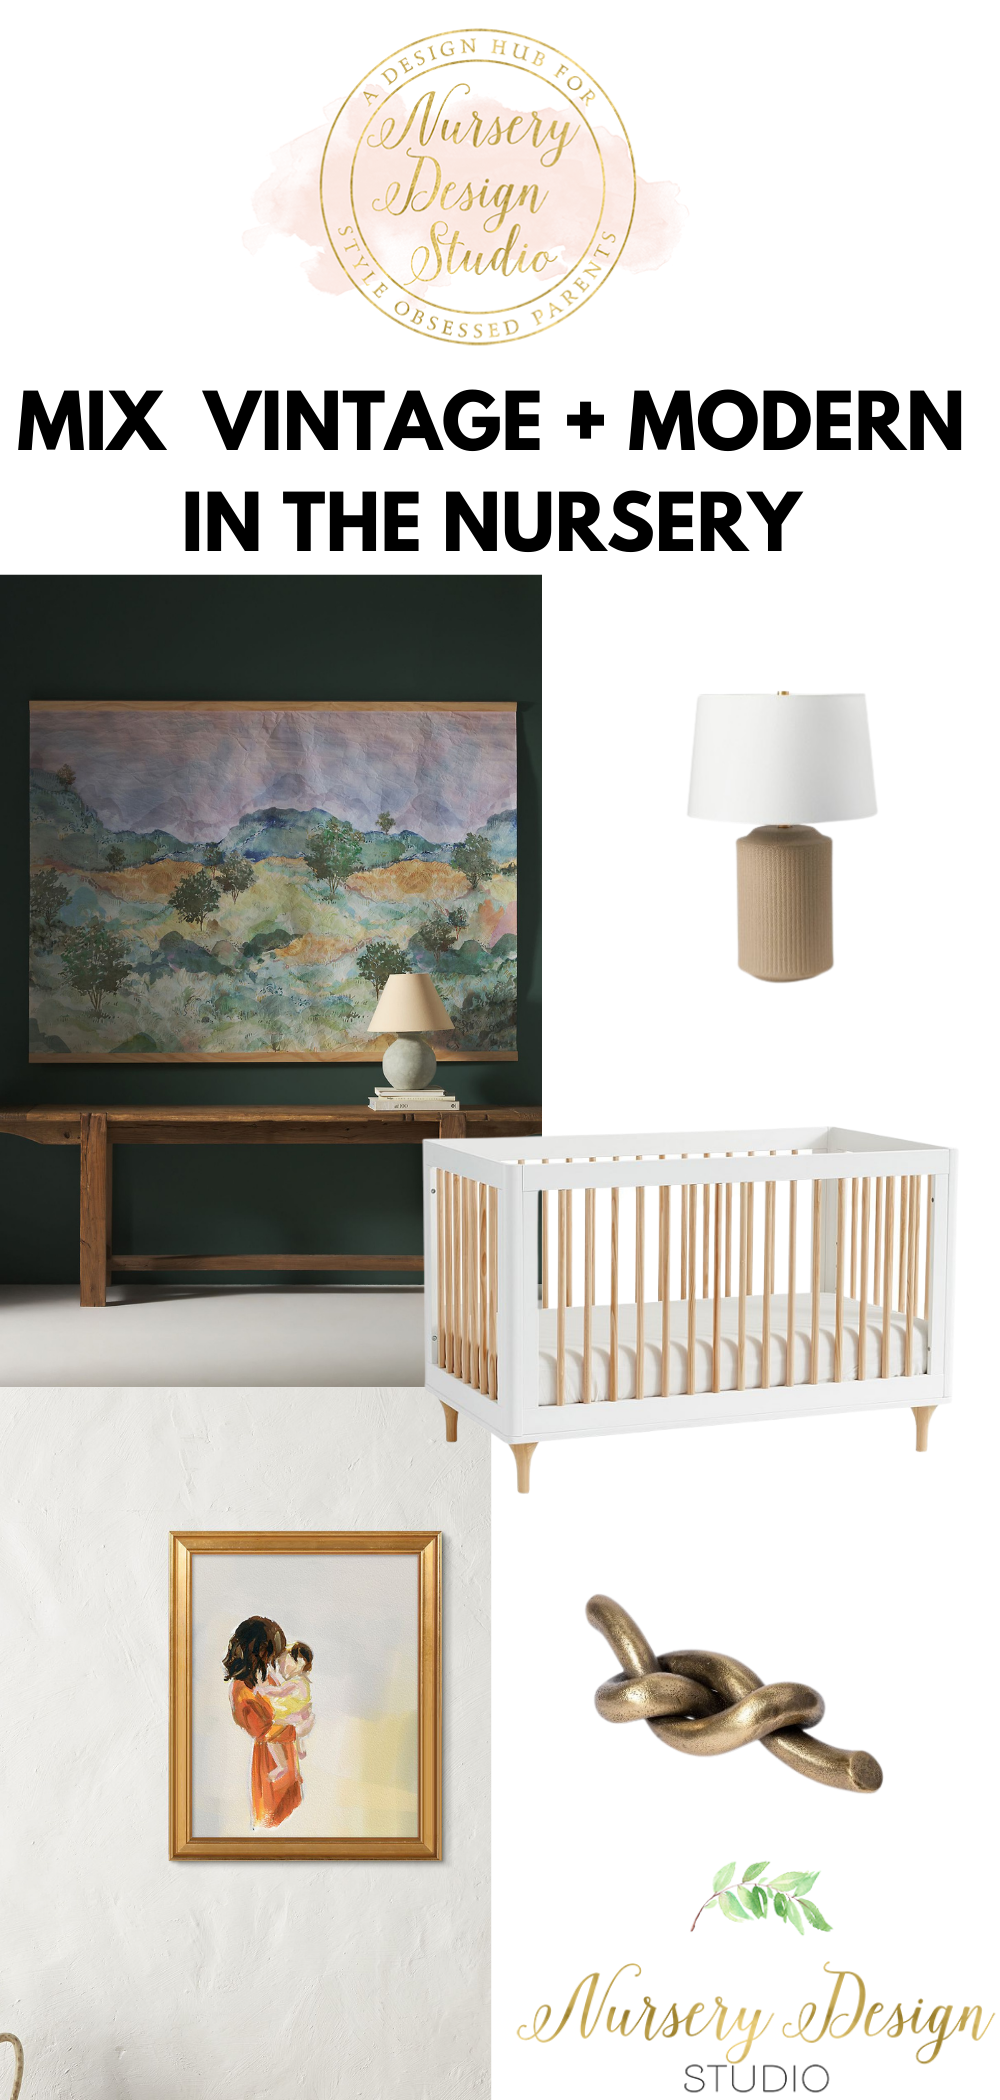 MIXING VINTAGE INTO A MODERN NURSERY